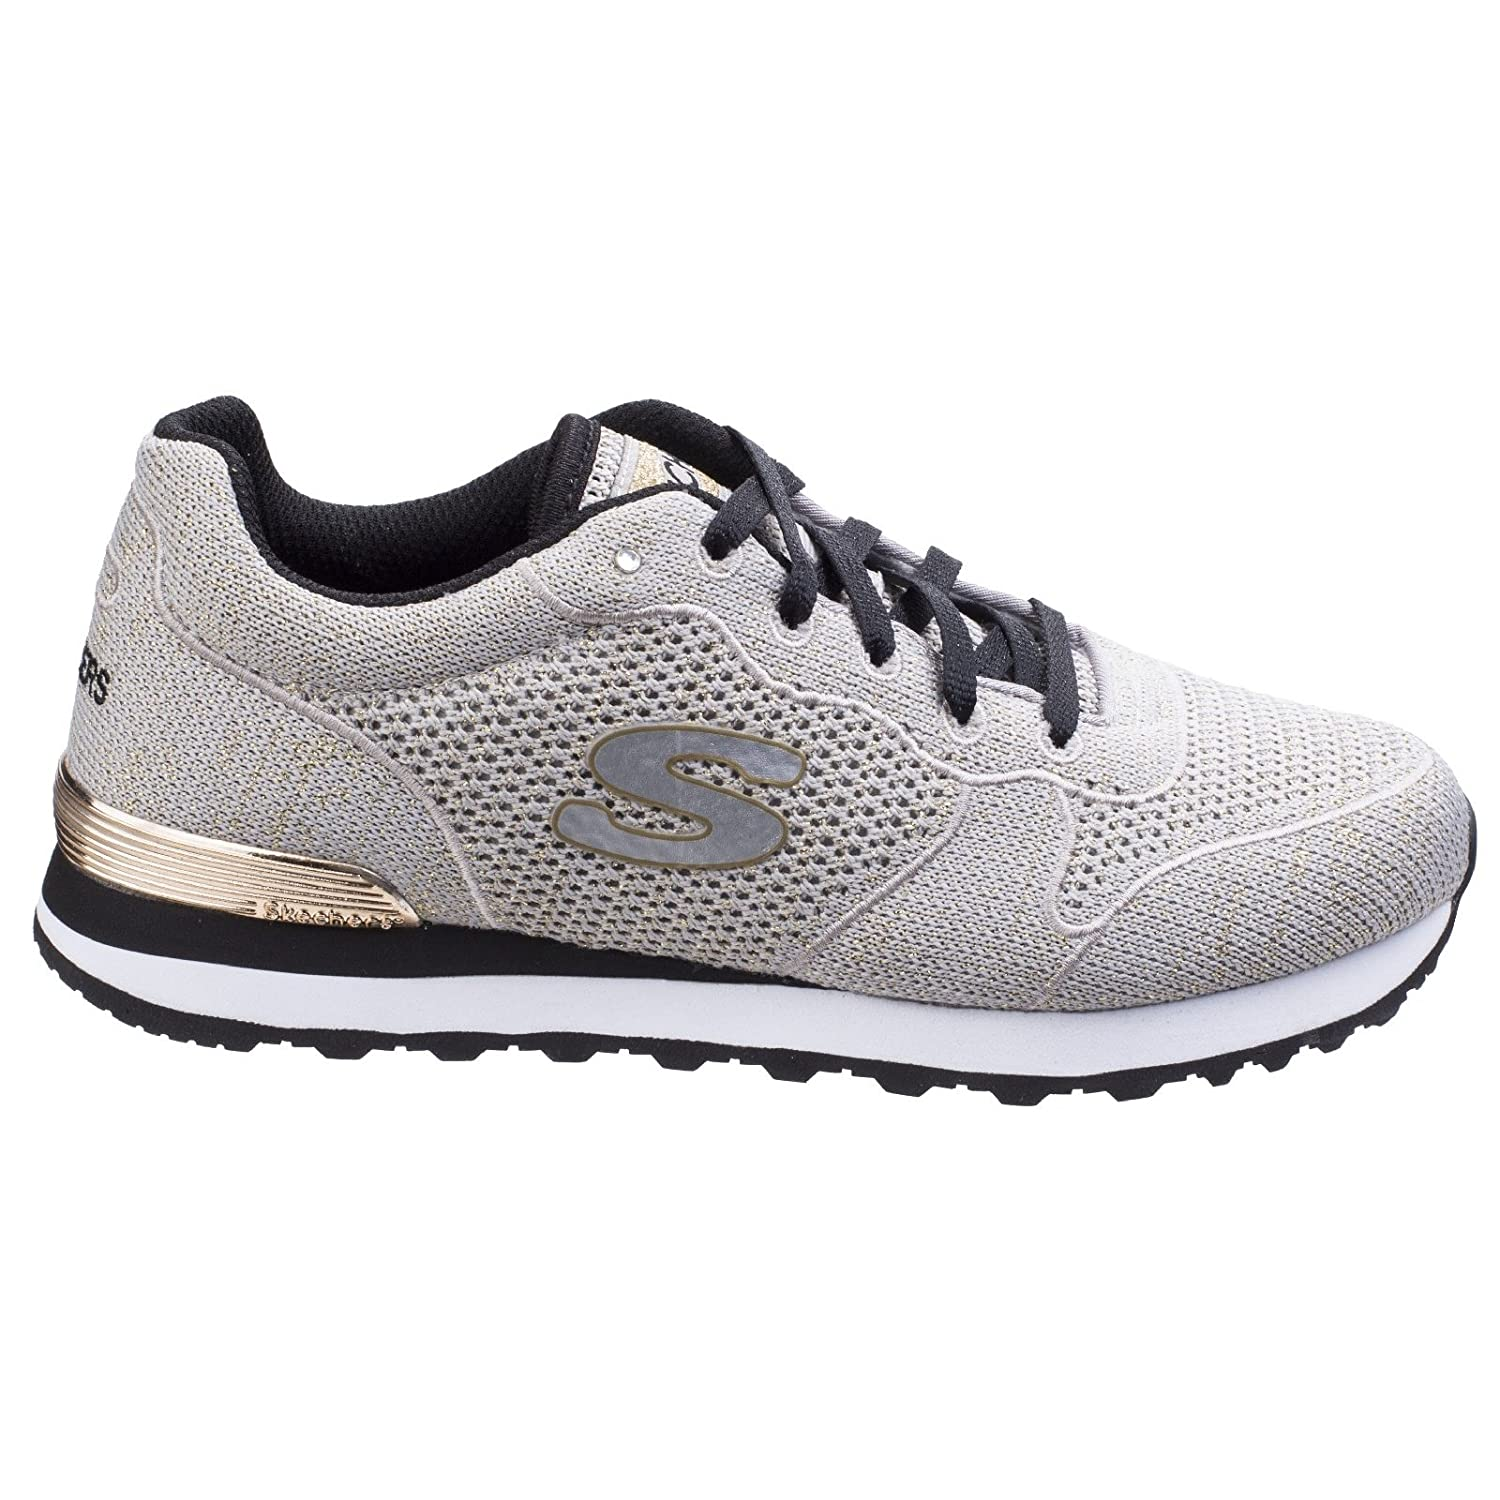 211db23fede1 Skechers Womens Ladies Retro OG 85 Lower Flyer Trainers (4 UK)  (Taupe Gold)  Amazon.co.uk  Clothing